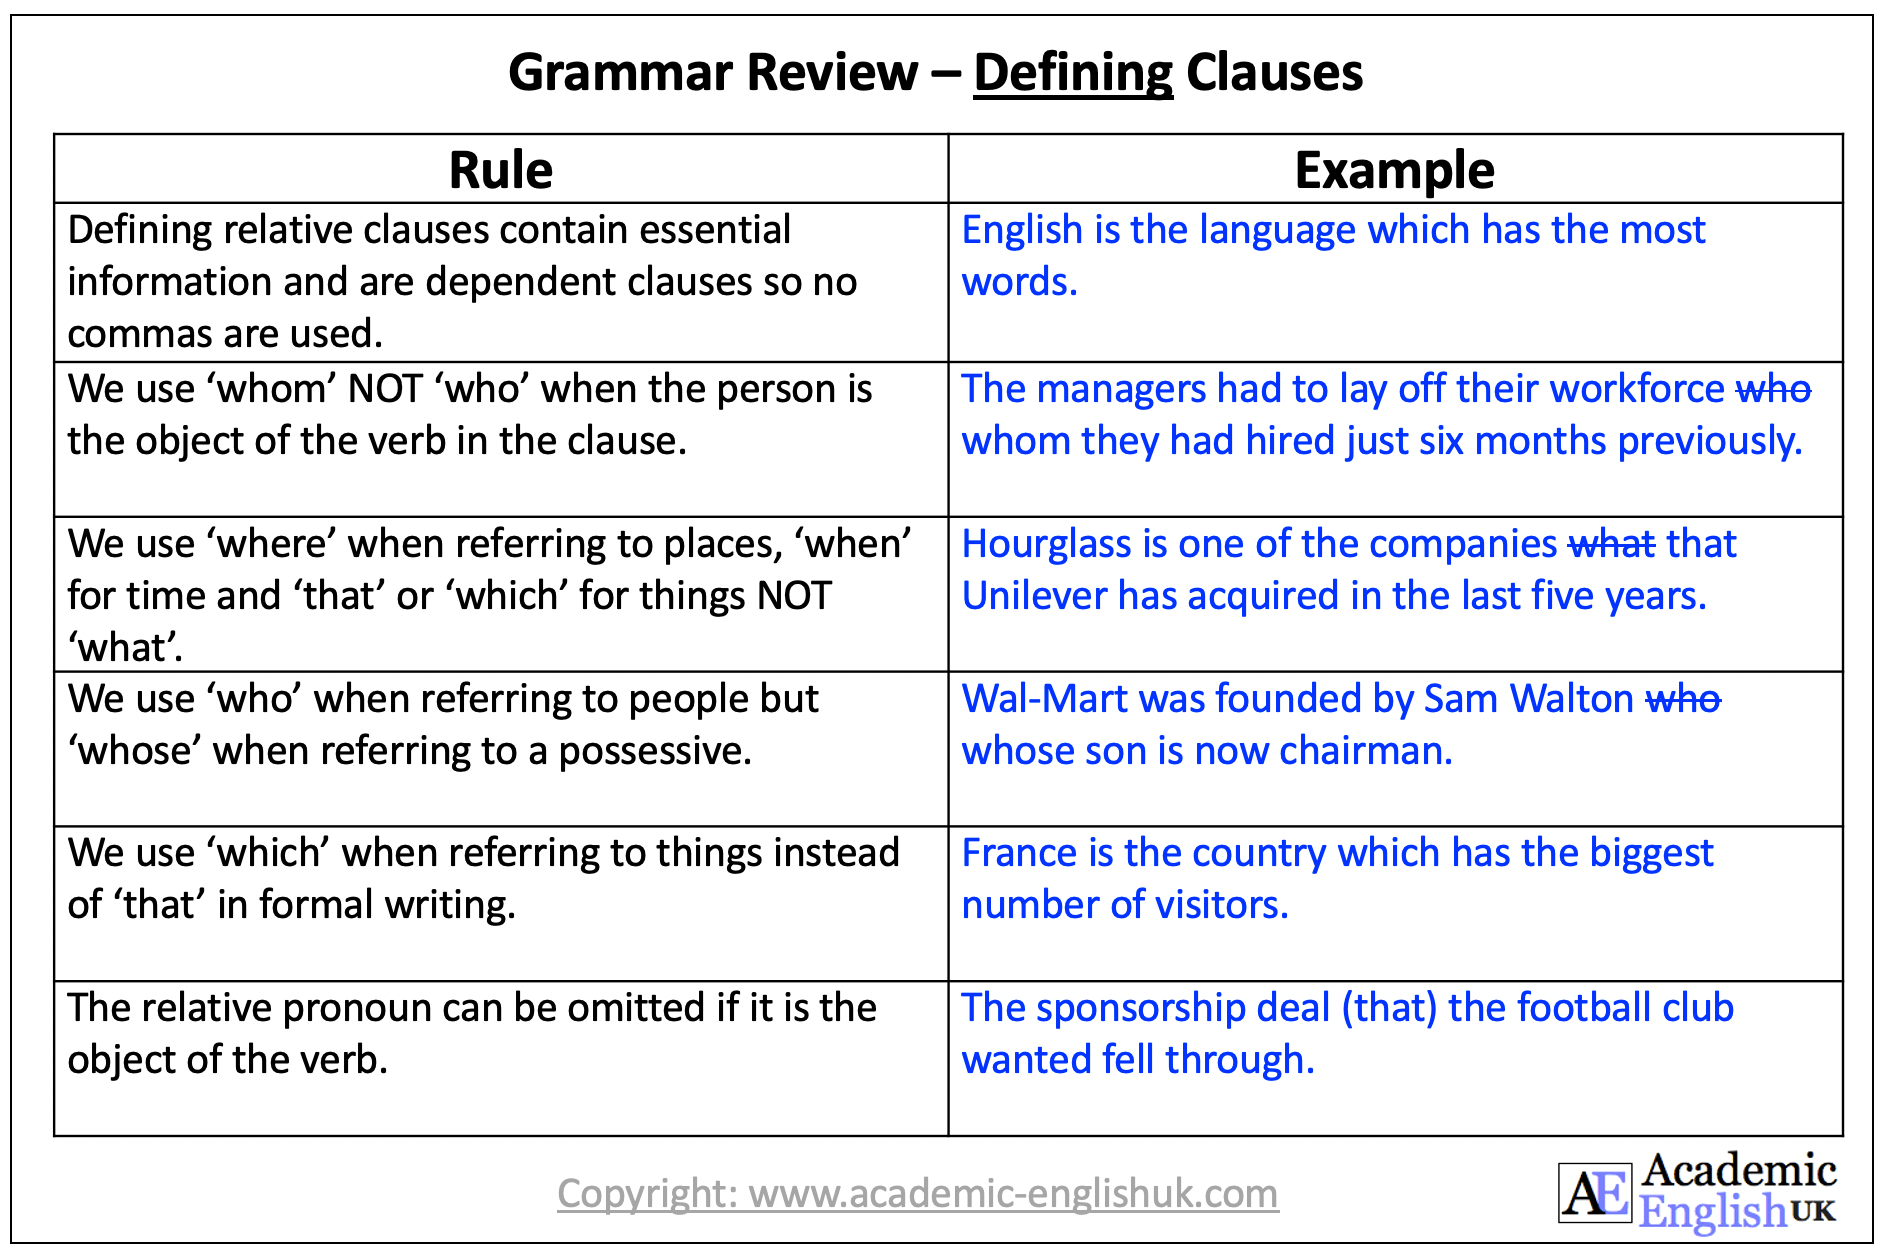 defining relative clauses AEUK